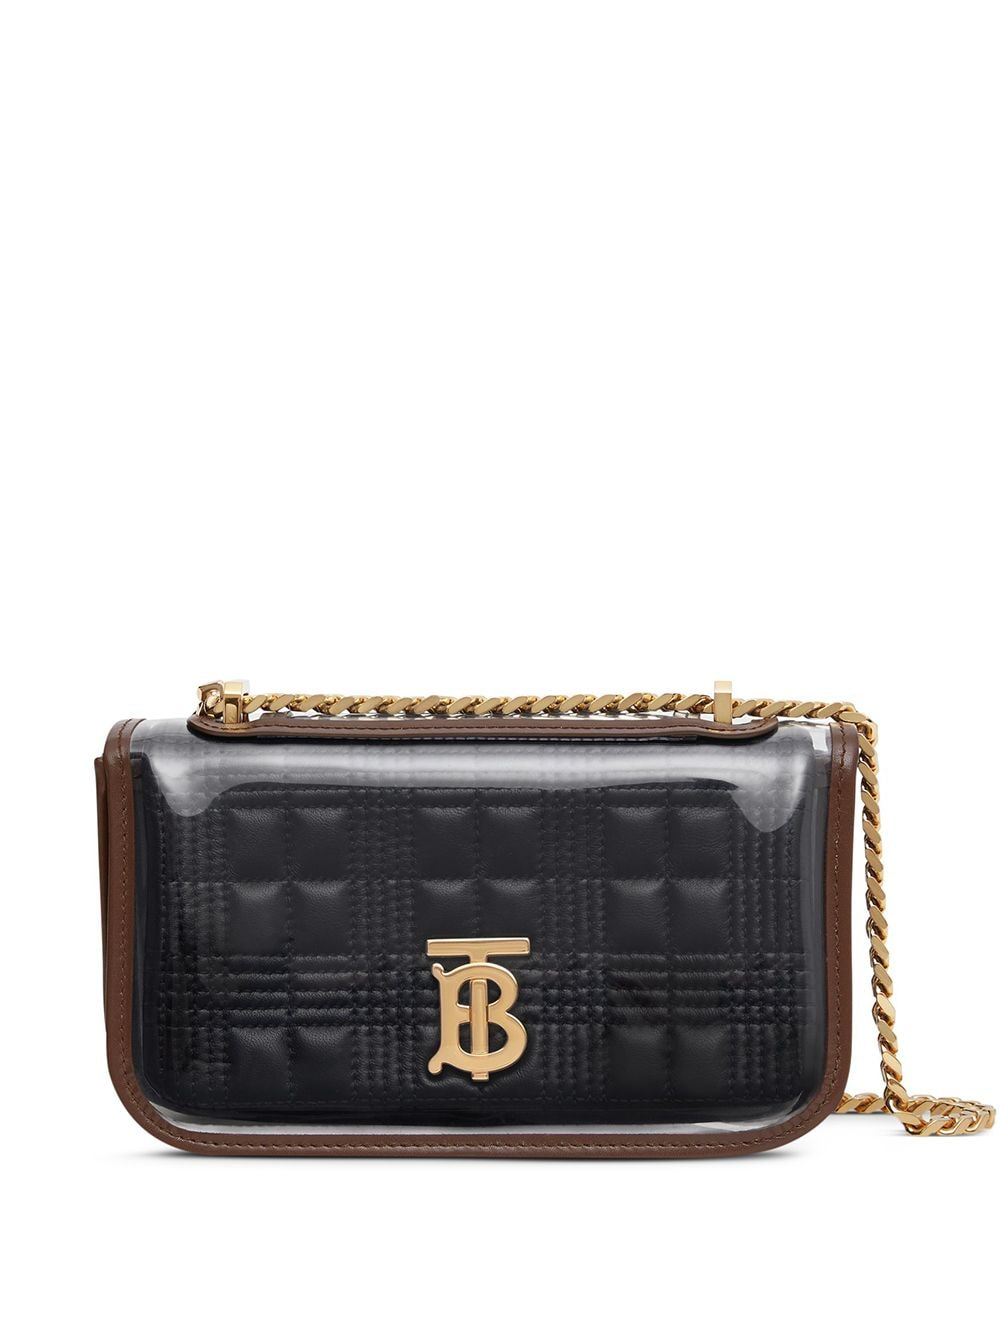 Burberry transparent cover quilted Lola mini bag - Black von Burberry